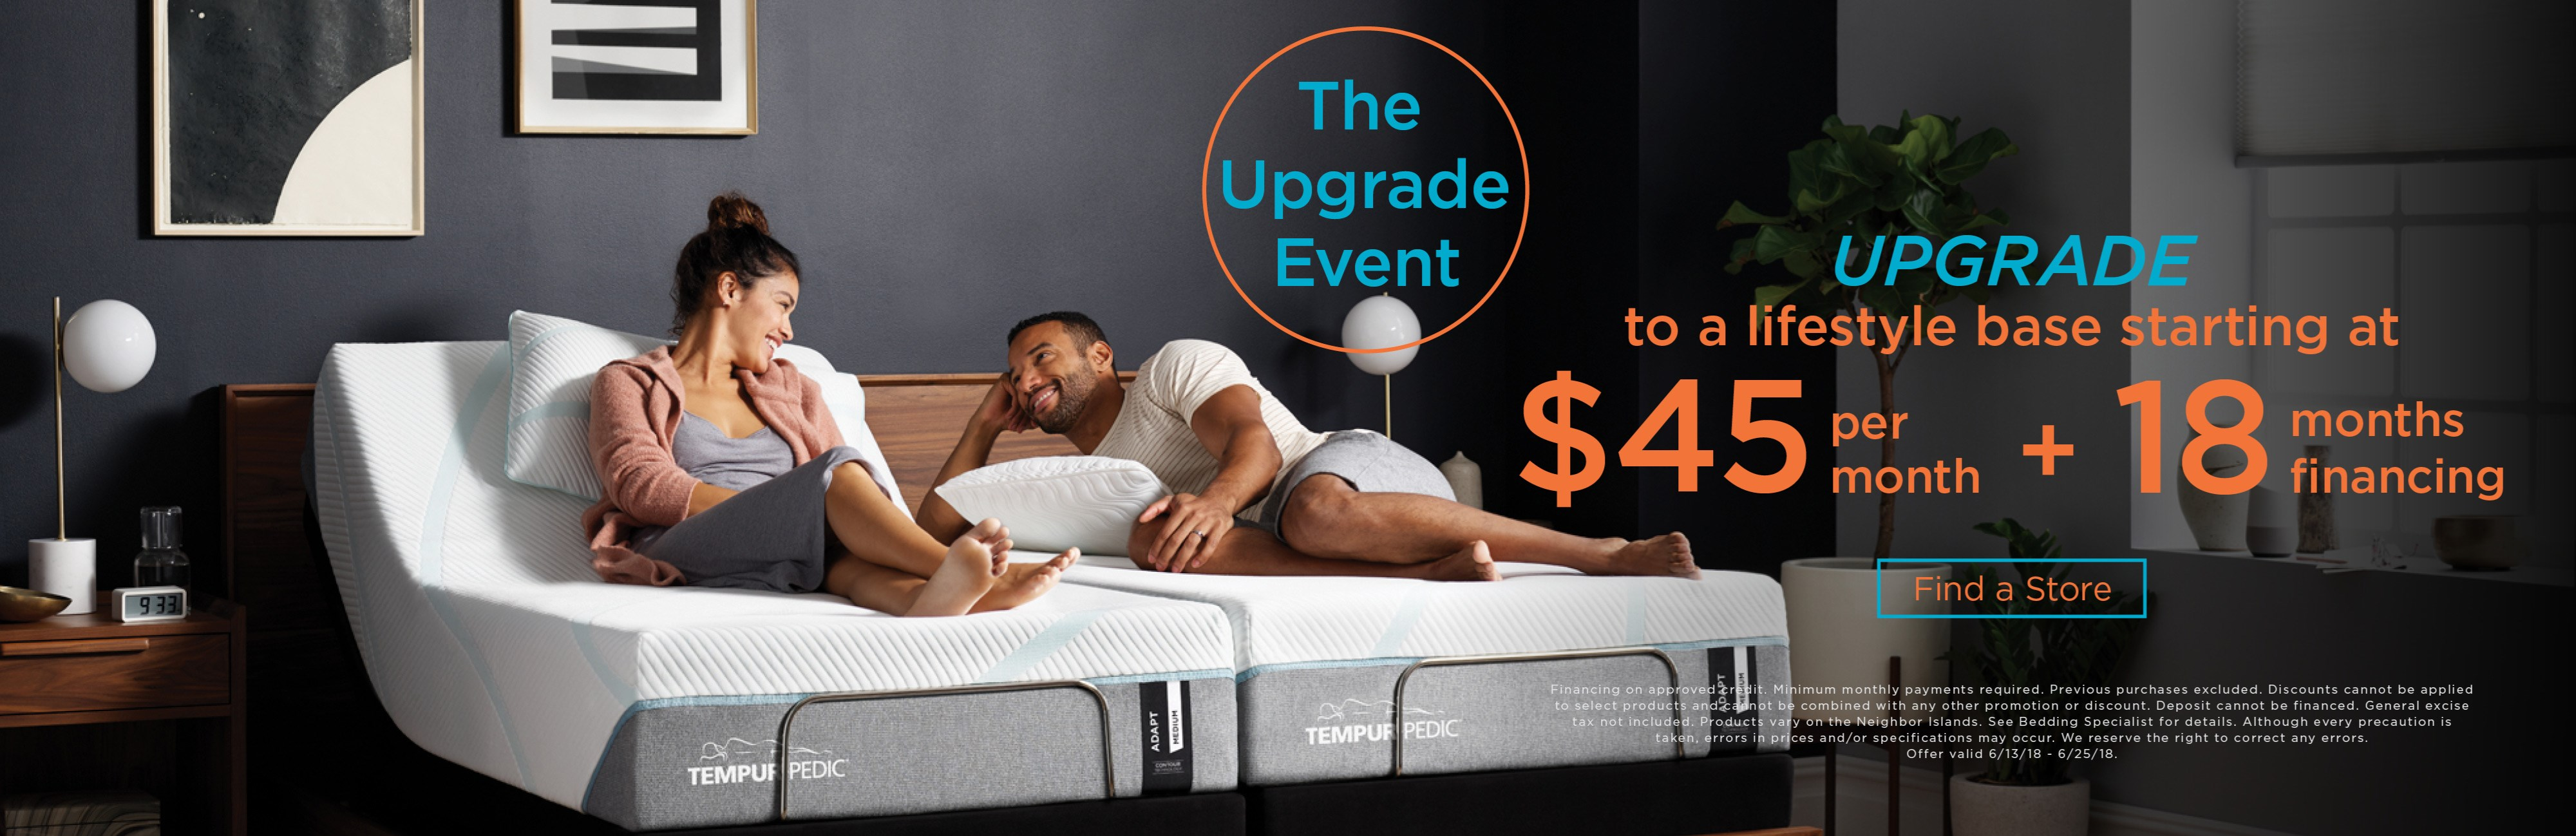 Upgrade to a lifestyle base starting at $45 per month and 18 months financing; see store for details.